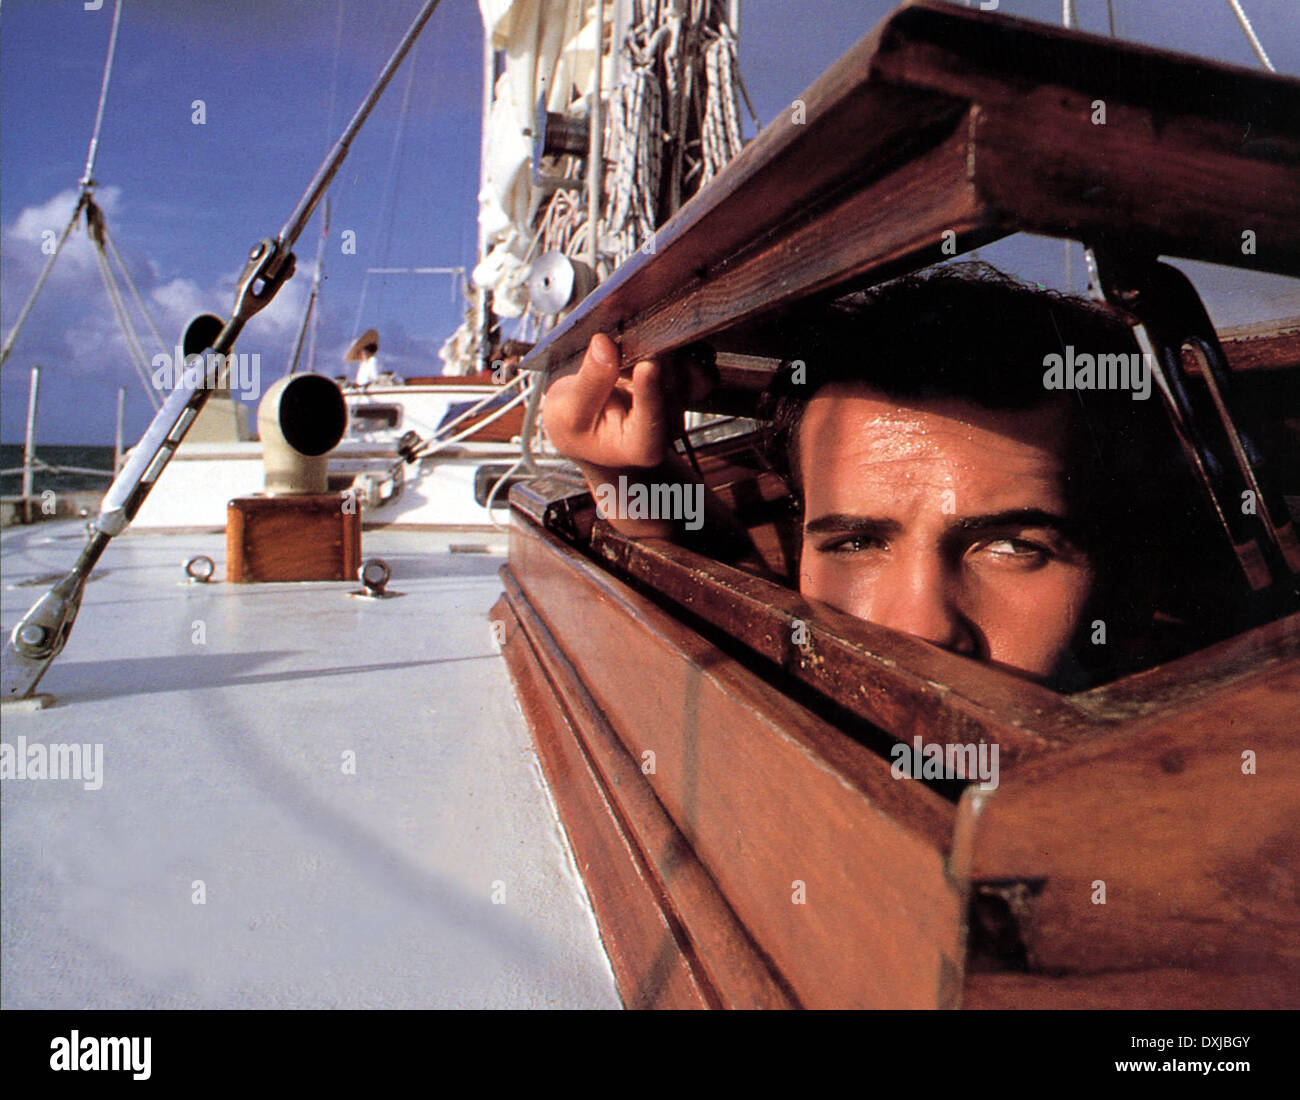 Calme plat (US/AUS 1989) Billy Zane Photo Stock